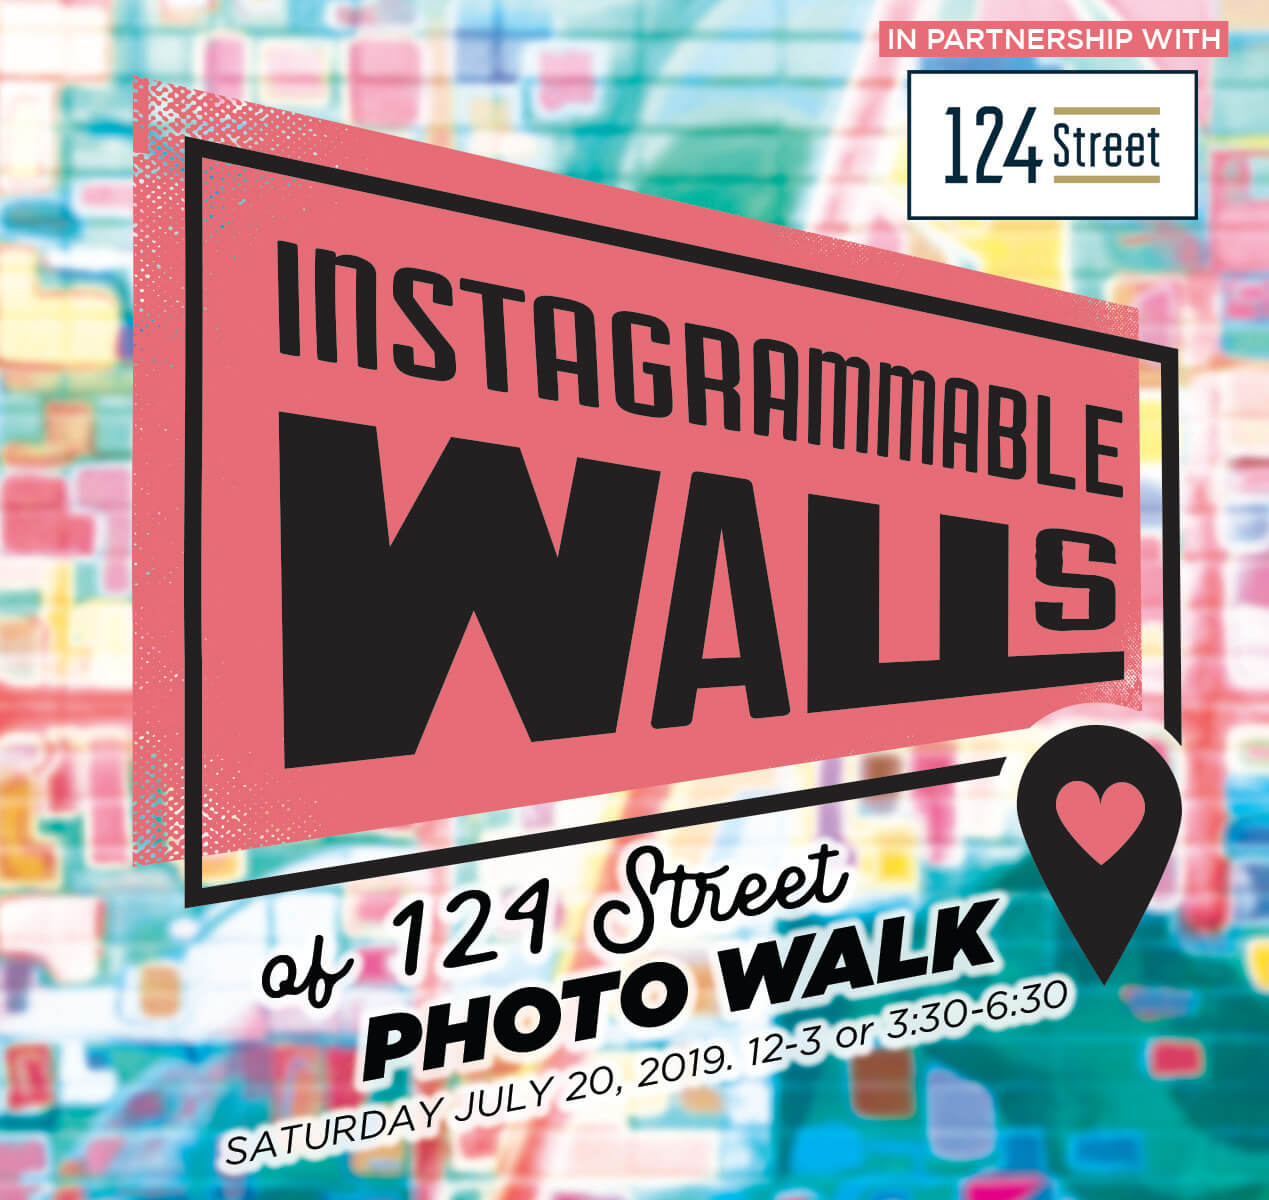 124 Street Instagrammable Wall Photo Walk Edmonton